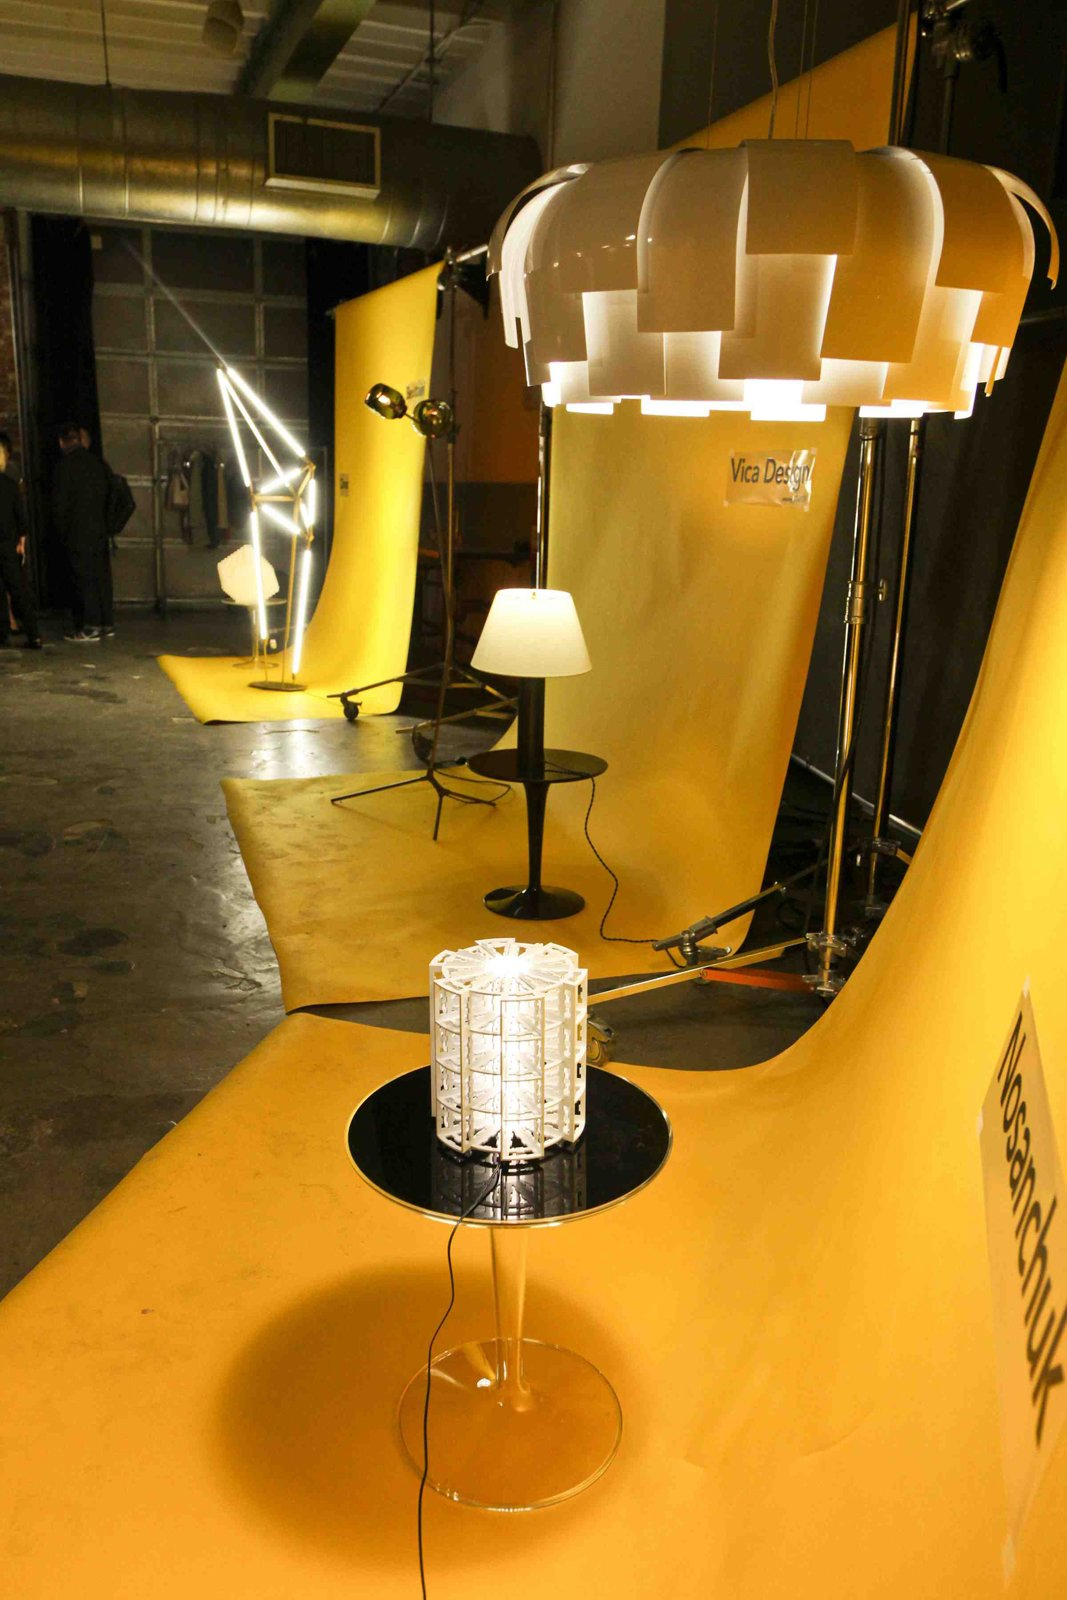 Dwell invited 14 designers to display work at the backdrop to the Light & Energy event. The set design was by Tom Borgese, who created photo vignettes in yellow for each design, unifying and warming the room at Industria SuperStudio.  Photo 2 of 22 in Dwell Light & Energy Issue Launch